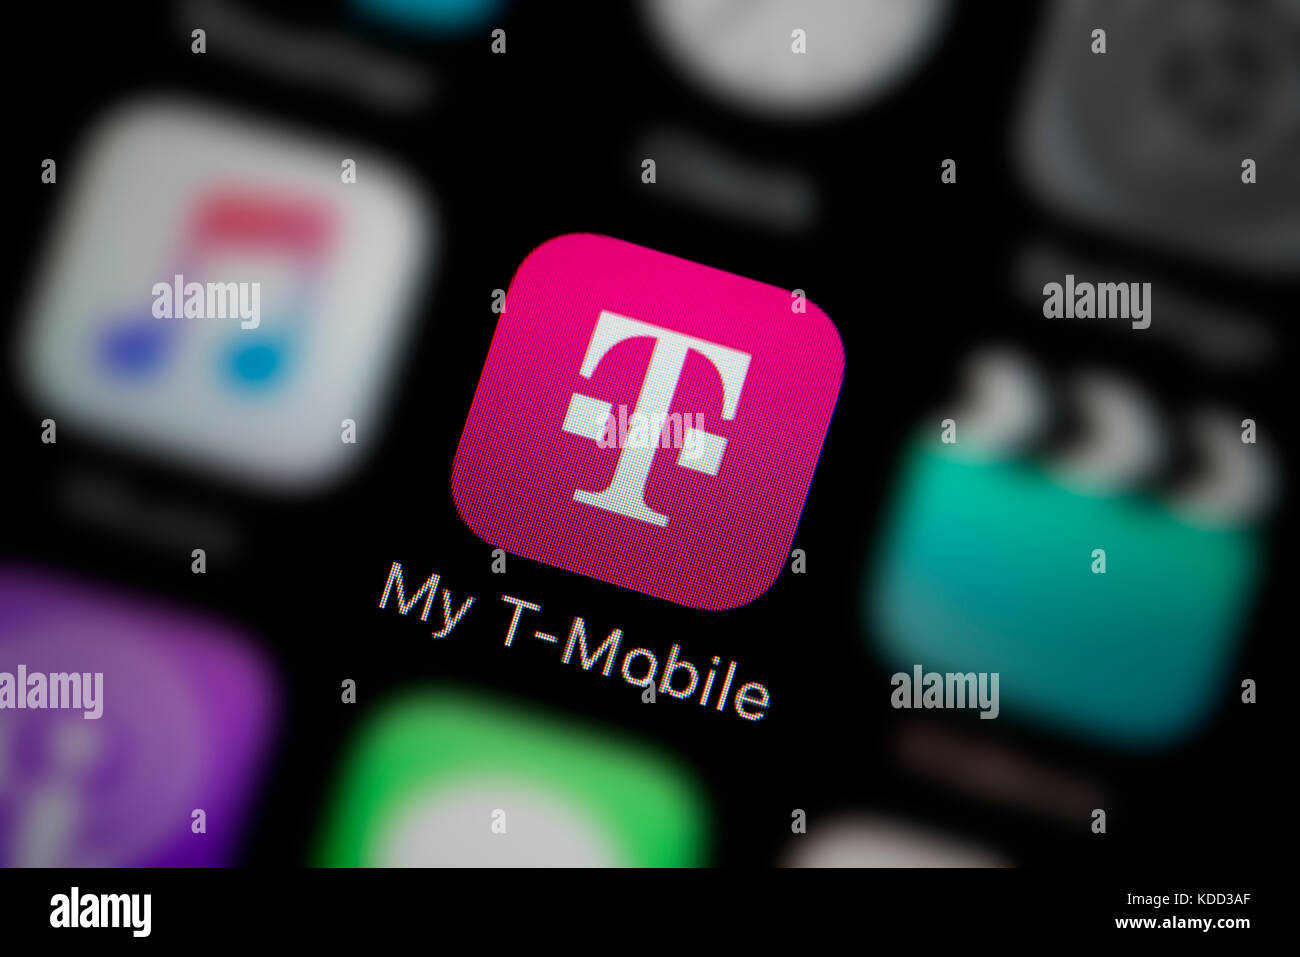 a close up shot of the logo representing my t mobile app icon as seen on the screen of a smart phone editorial use only